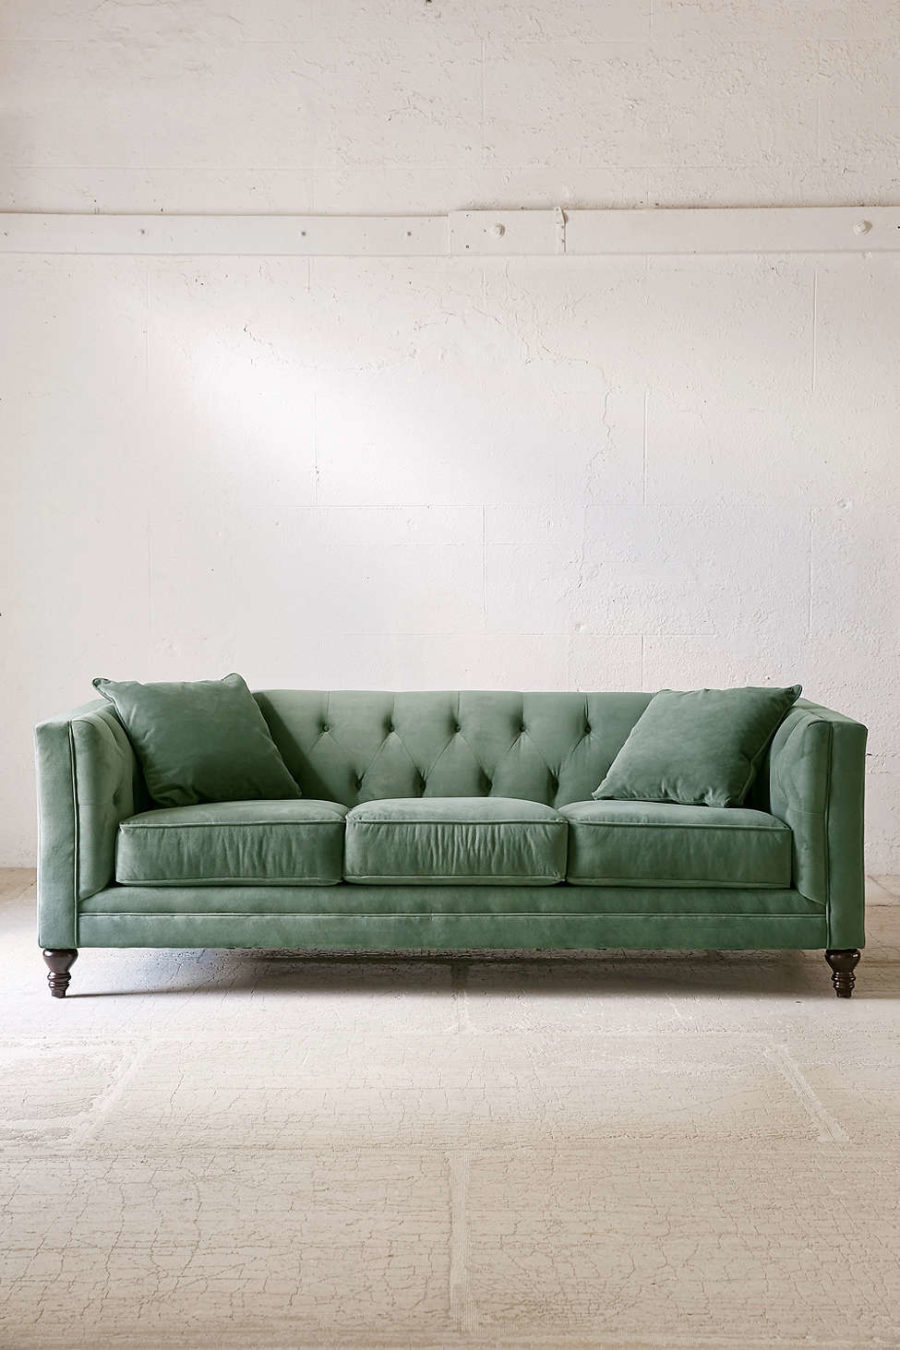 Urban Sofa S 20 Velvet Couches That Add Sophistication And Eclectiscism